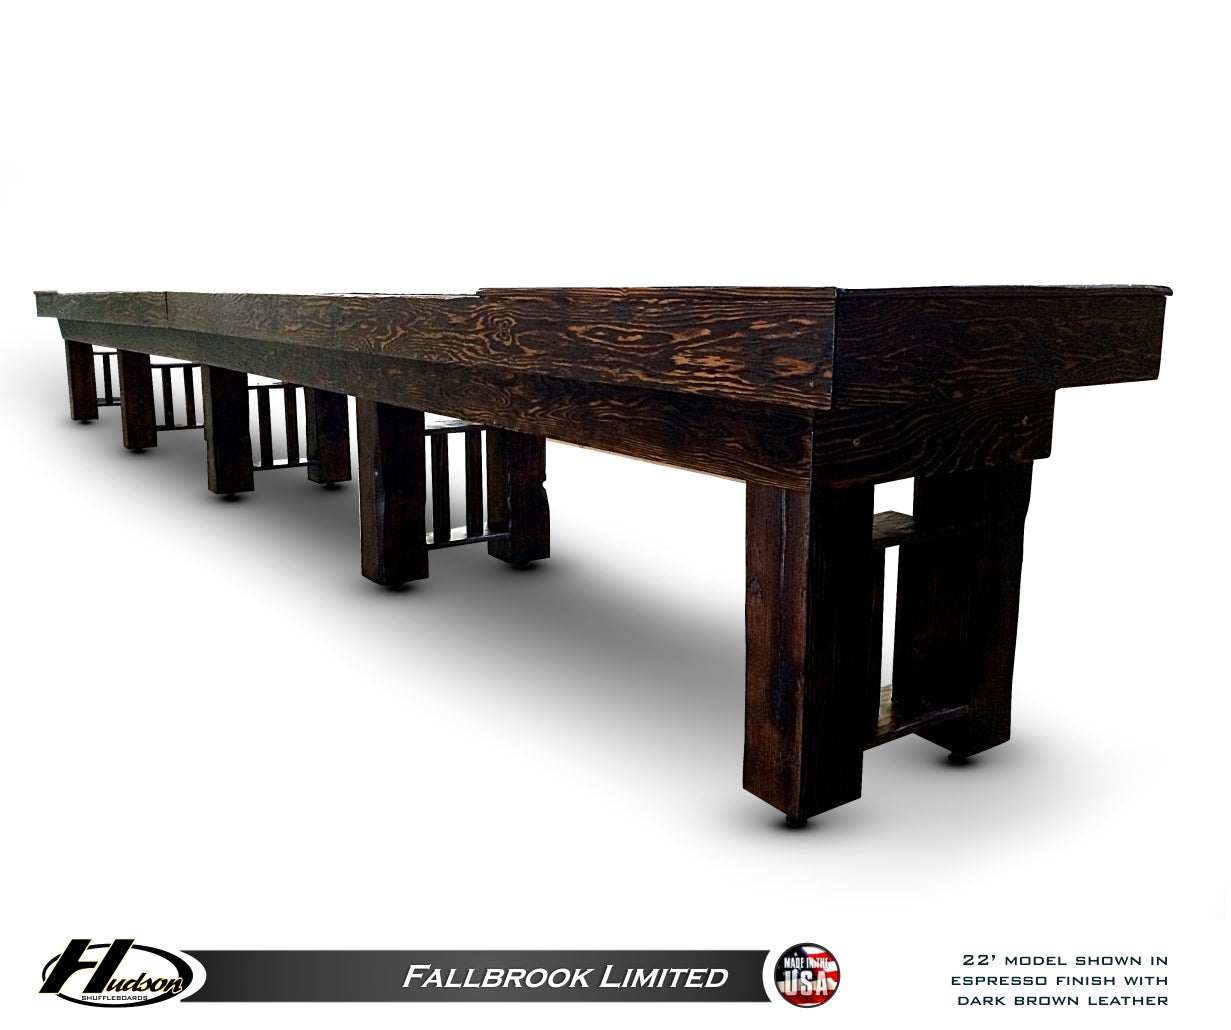 Fallbrook Limited Shuffleboard Table